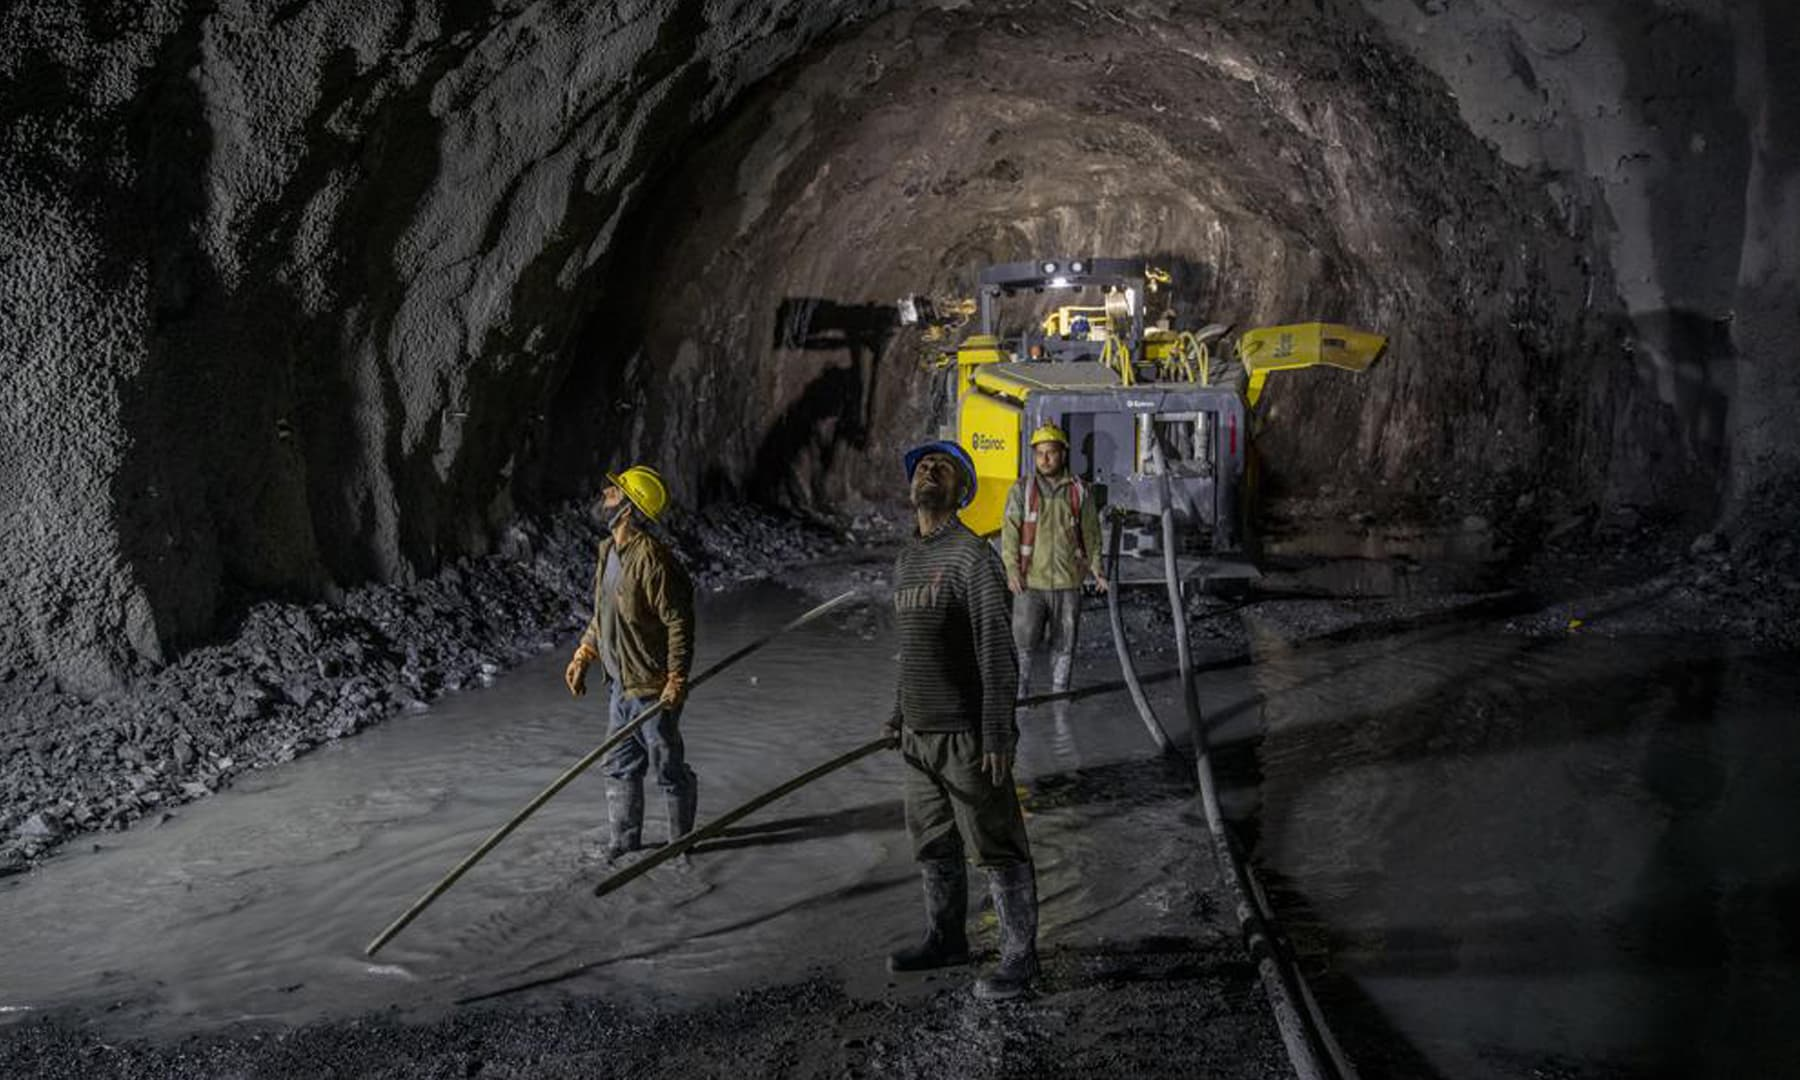 Workers employed by the Megha Engineering And Infrastructures Limited work inside the Nilgrar Tunnel in Baltal area, northeast of Srinagar in Indian-occupied Kashmir. — AP